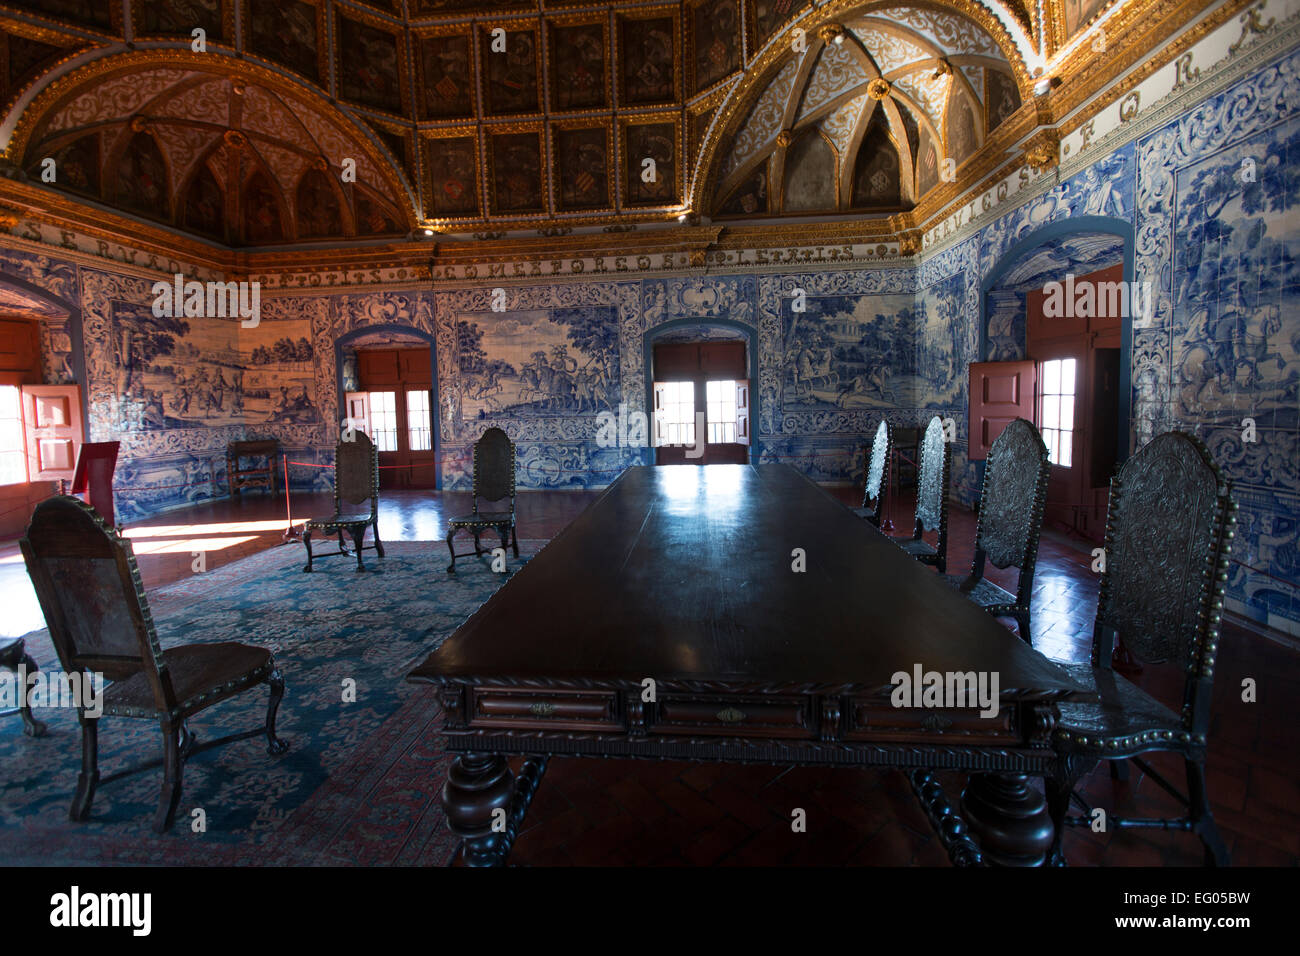 Sala dos Brasoes, Coat-of Arms Room Sintra National Palace - Stock Image